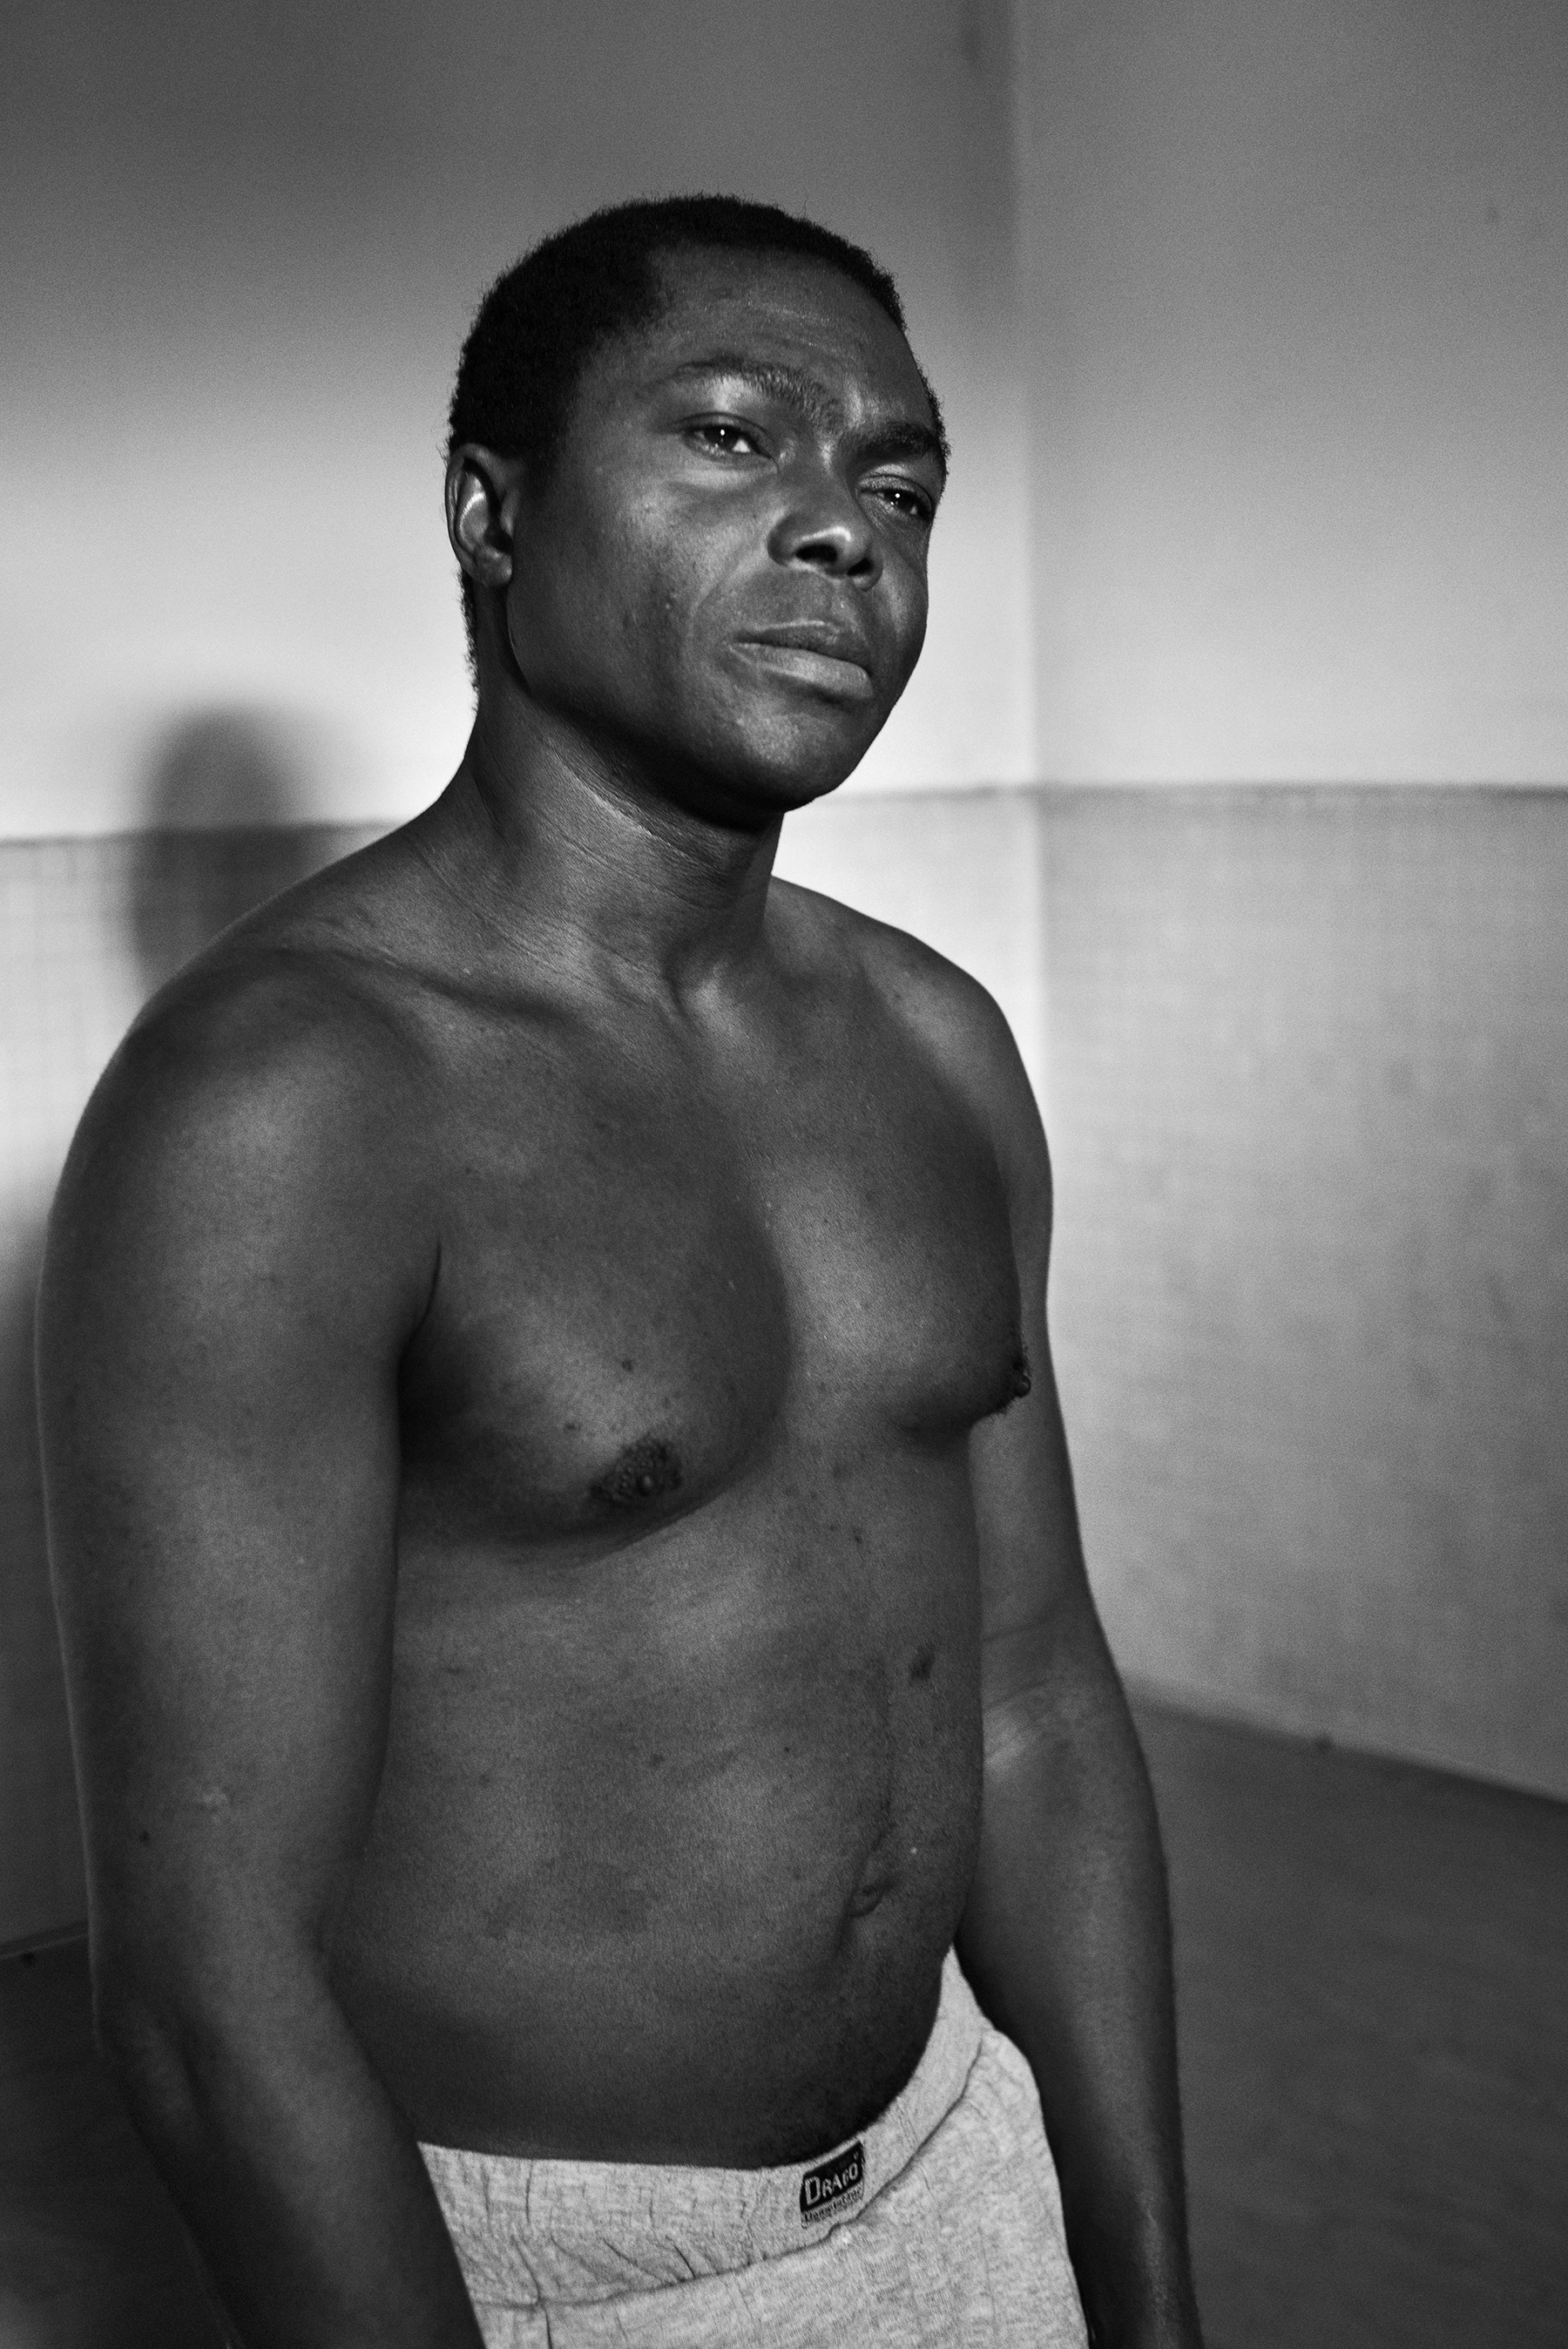 Rok Ibe (30) in the showers� entrance inside the Public Baths of Via Bianz� in Turin, Italy; December 2018.Mr. Ibe lives with his parents on the outskirt of Torino; given that they can�t afford to pay housing bills, they are forced to live without heating and hot water.